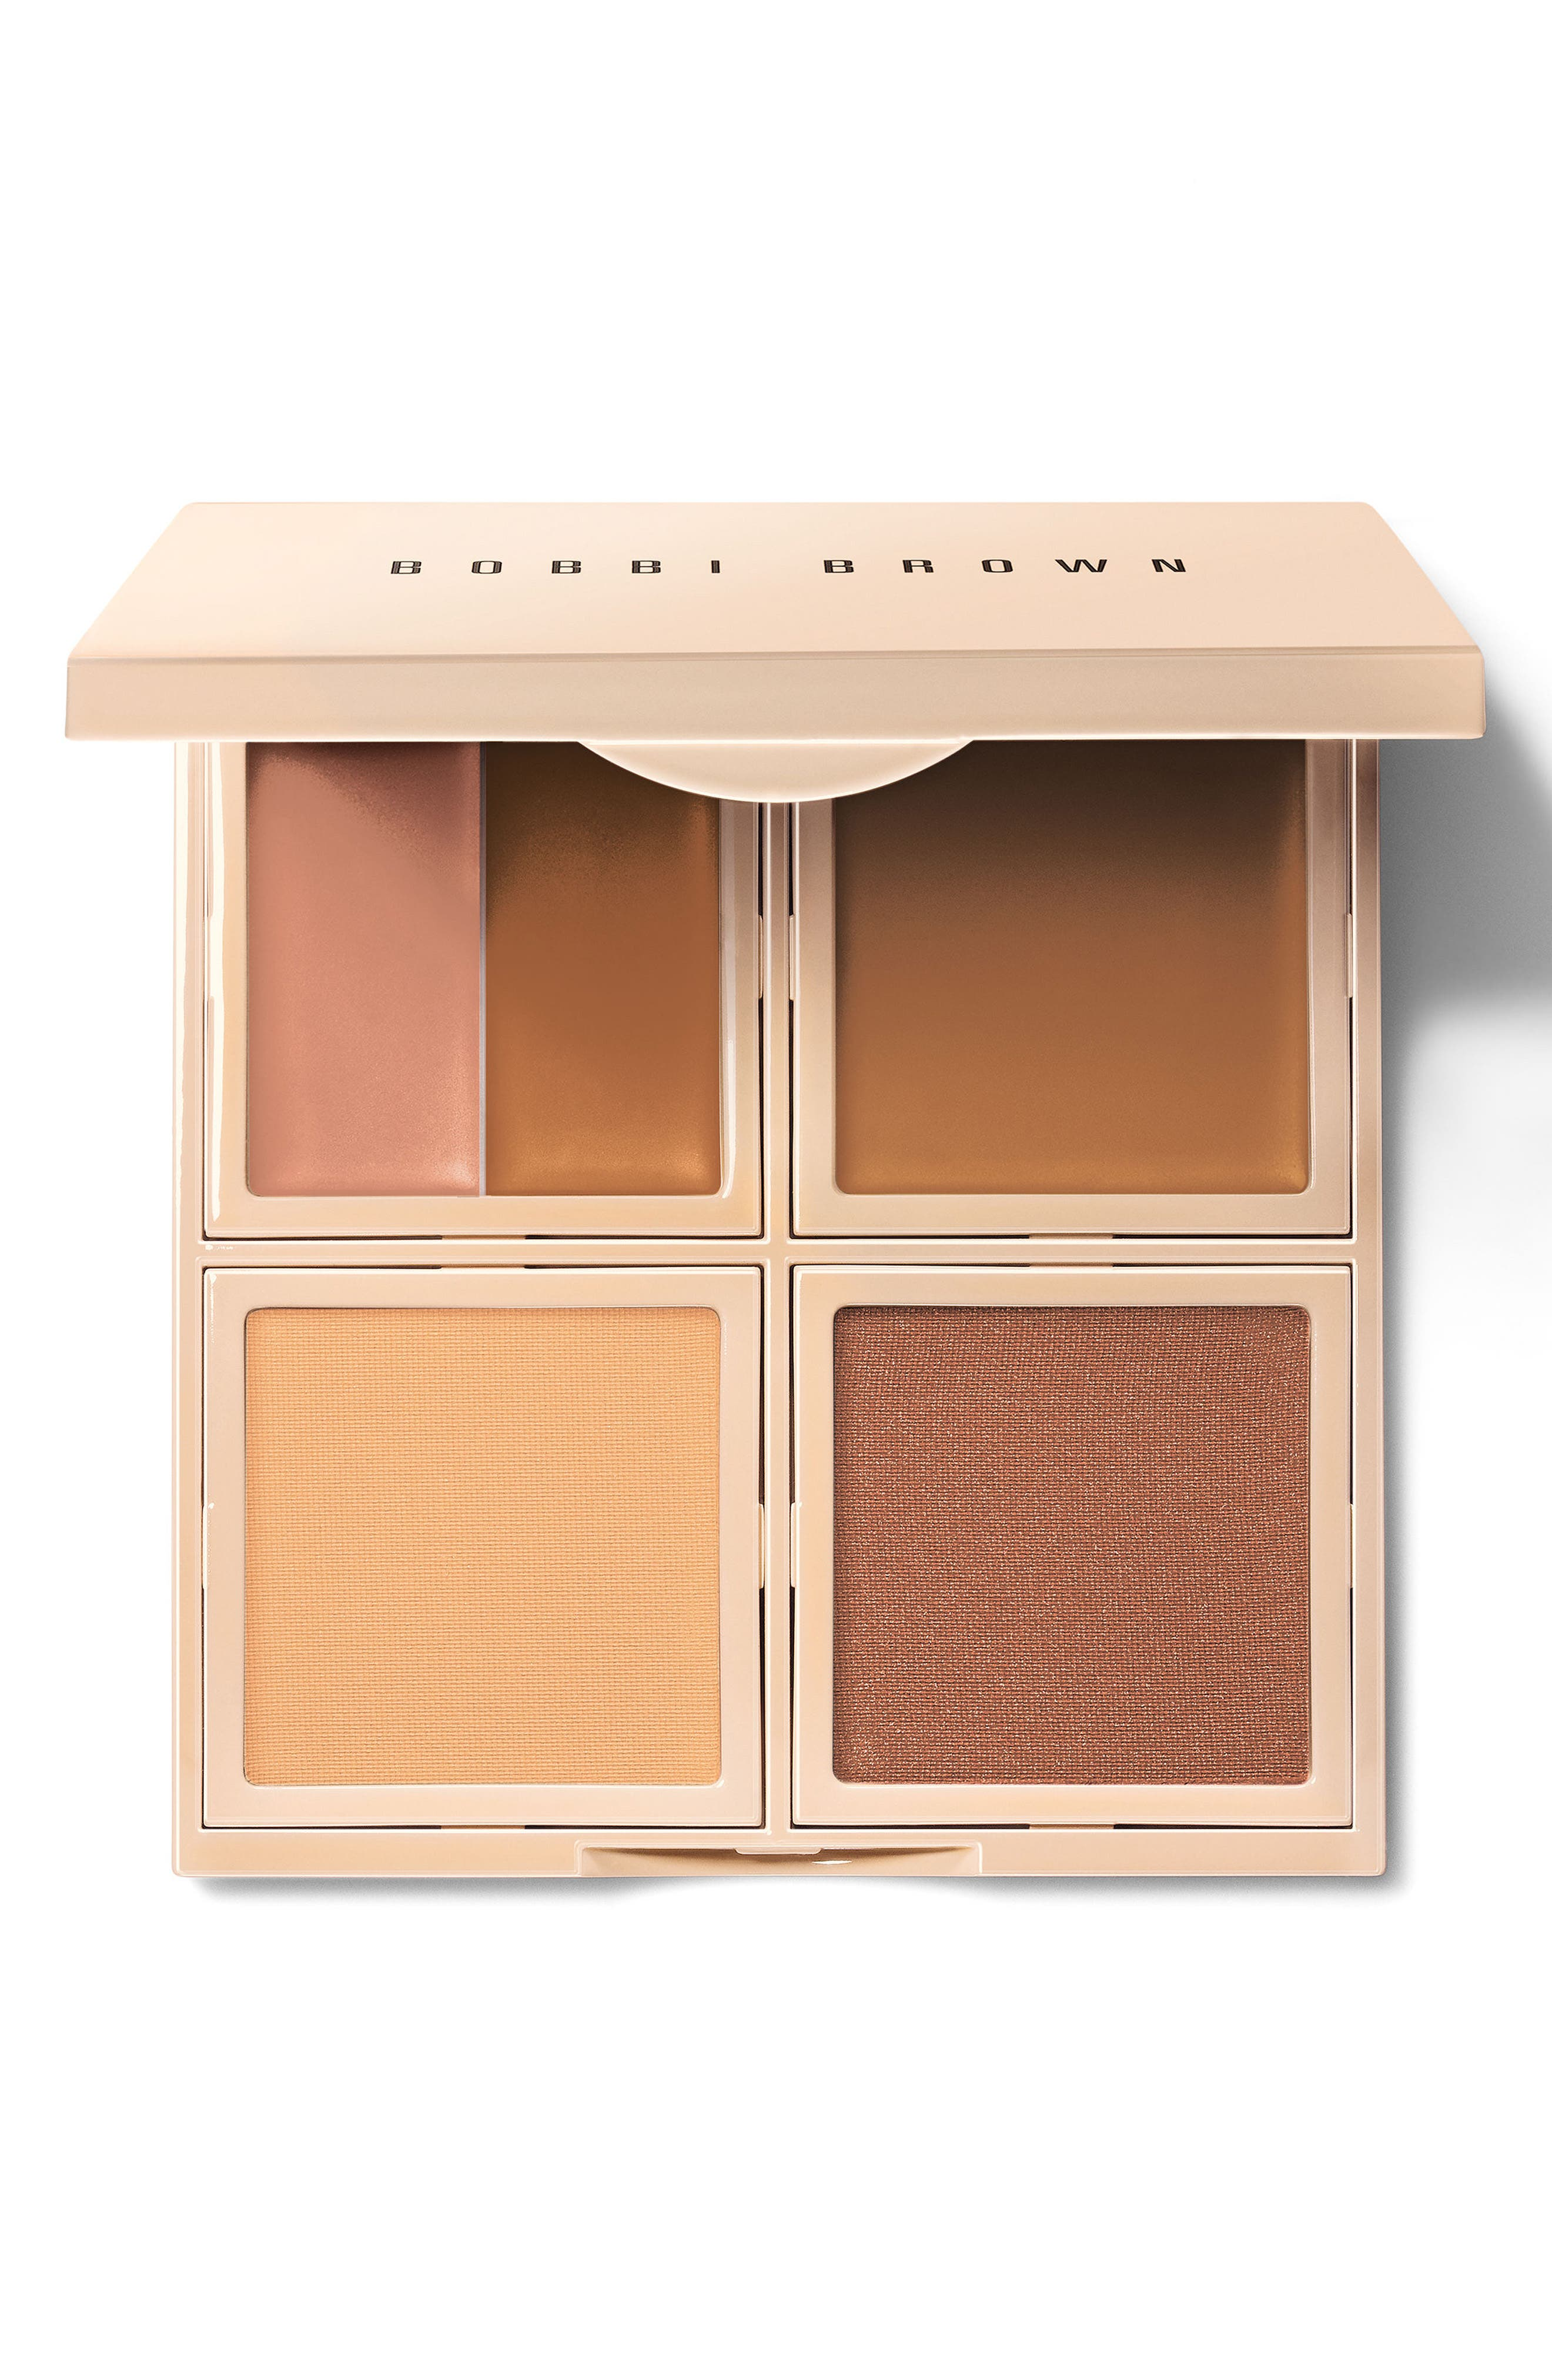 Image of Bobbi Brown Essential 5-in-1 Face Palette